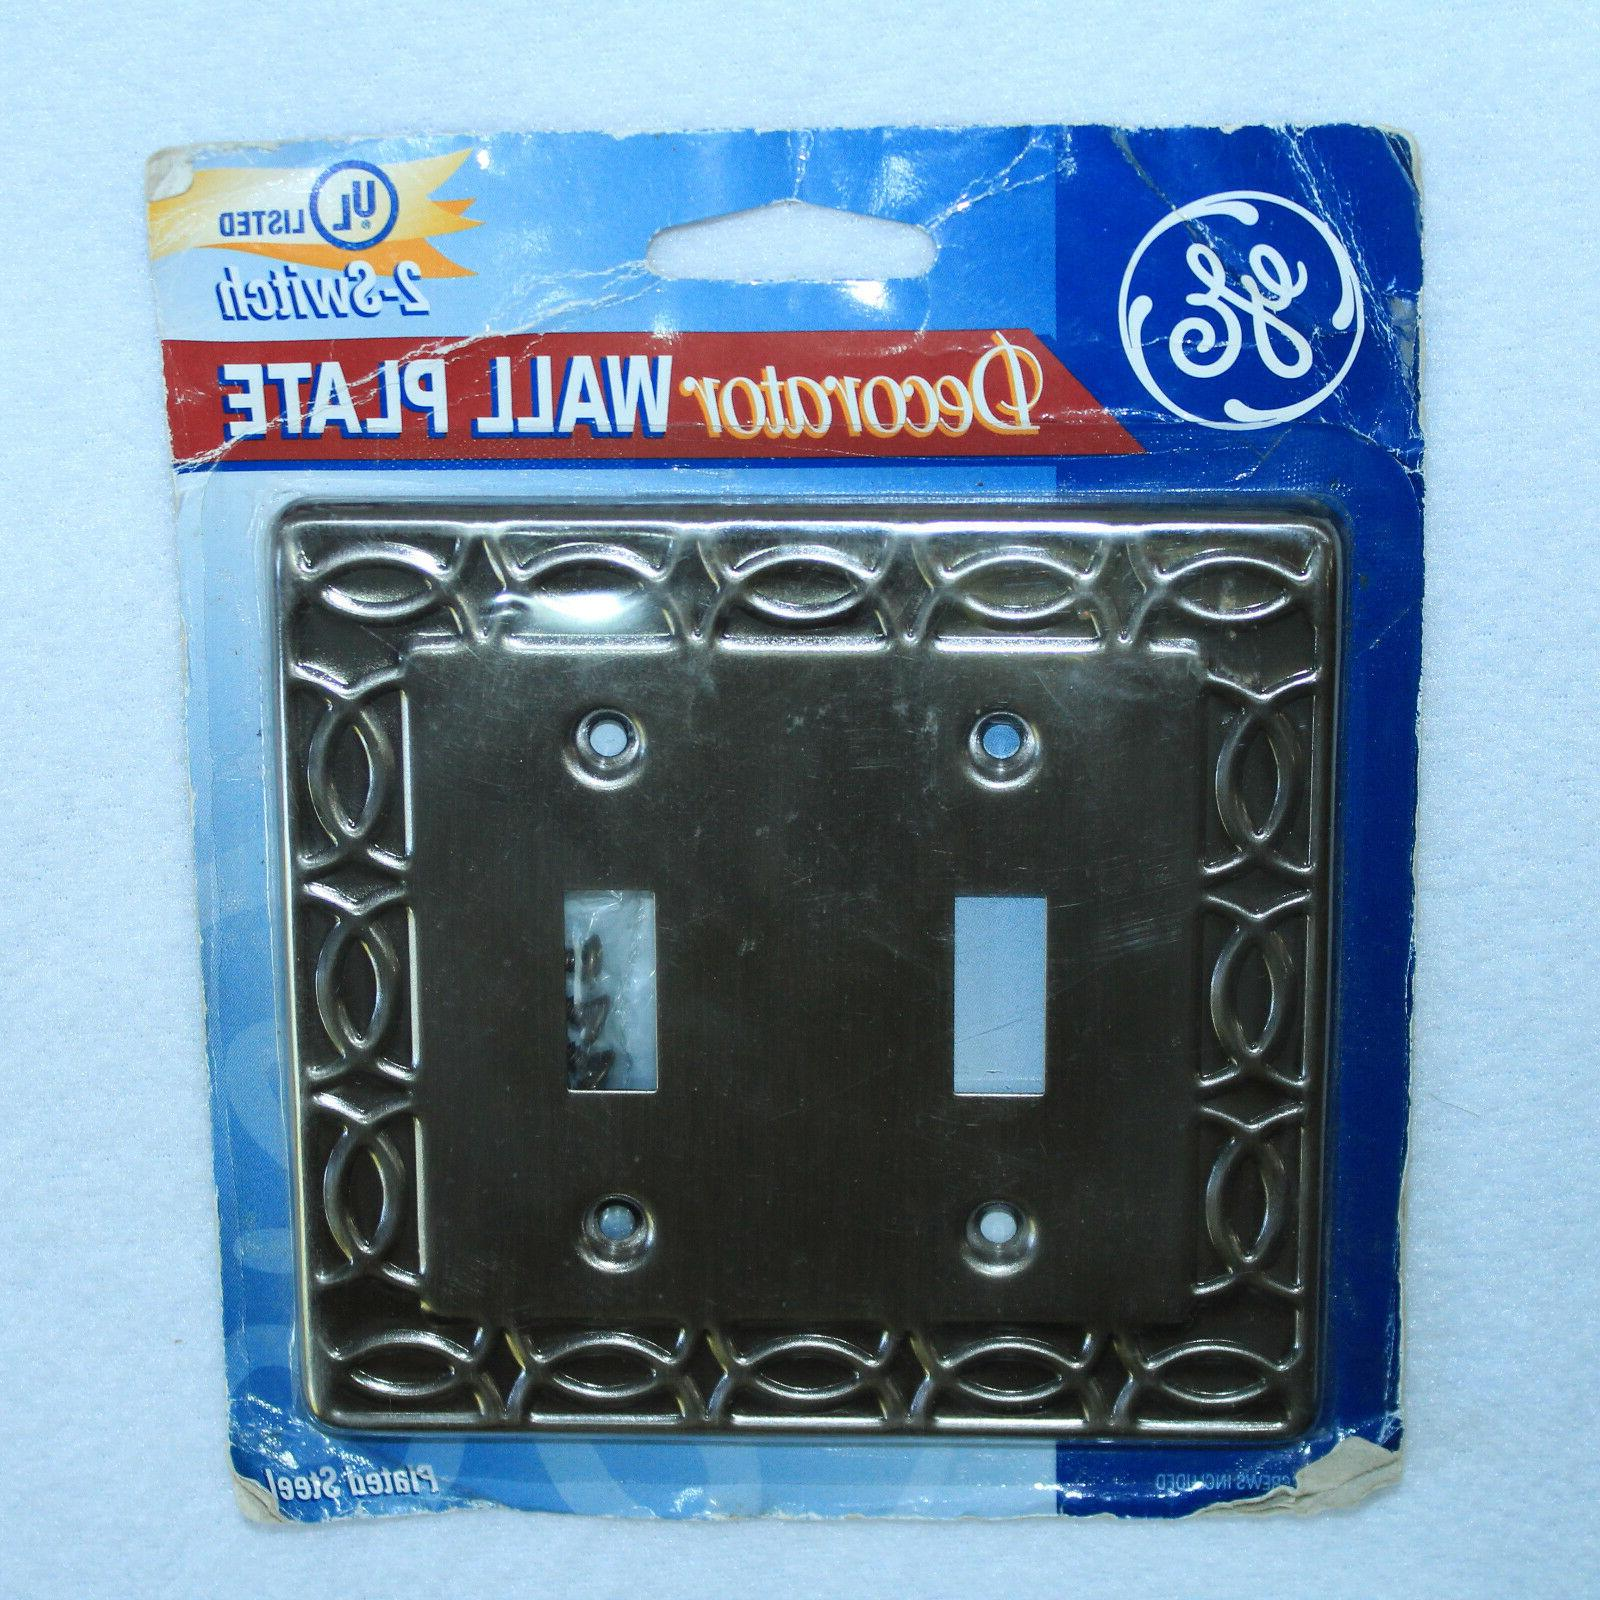 NEW SEALED GE Decorator Wall Plate Electric Power Light 2-Sw